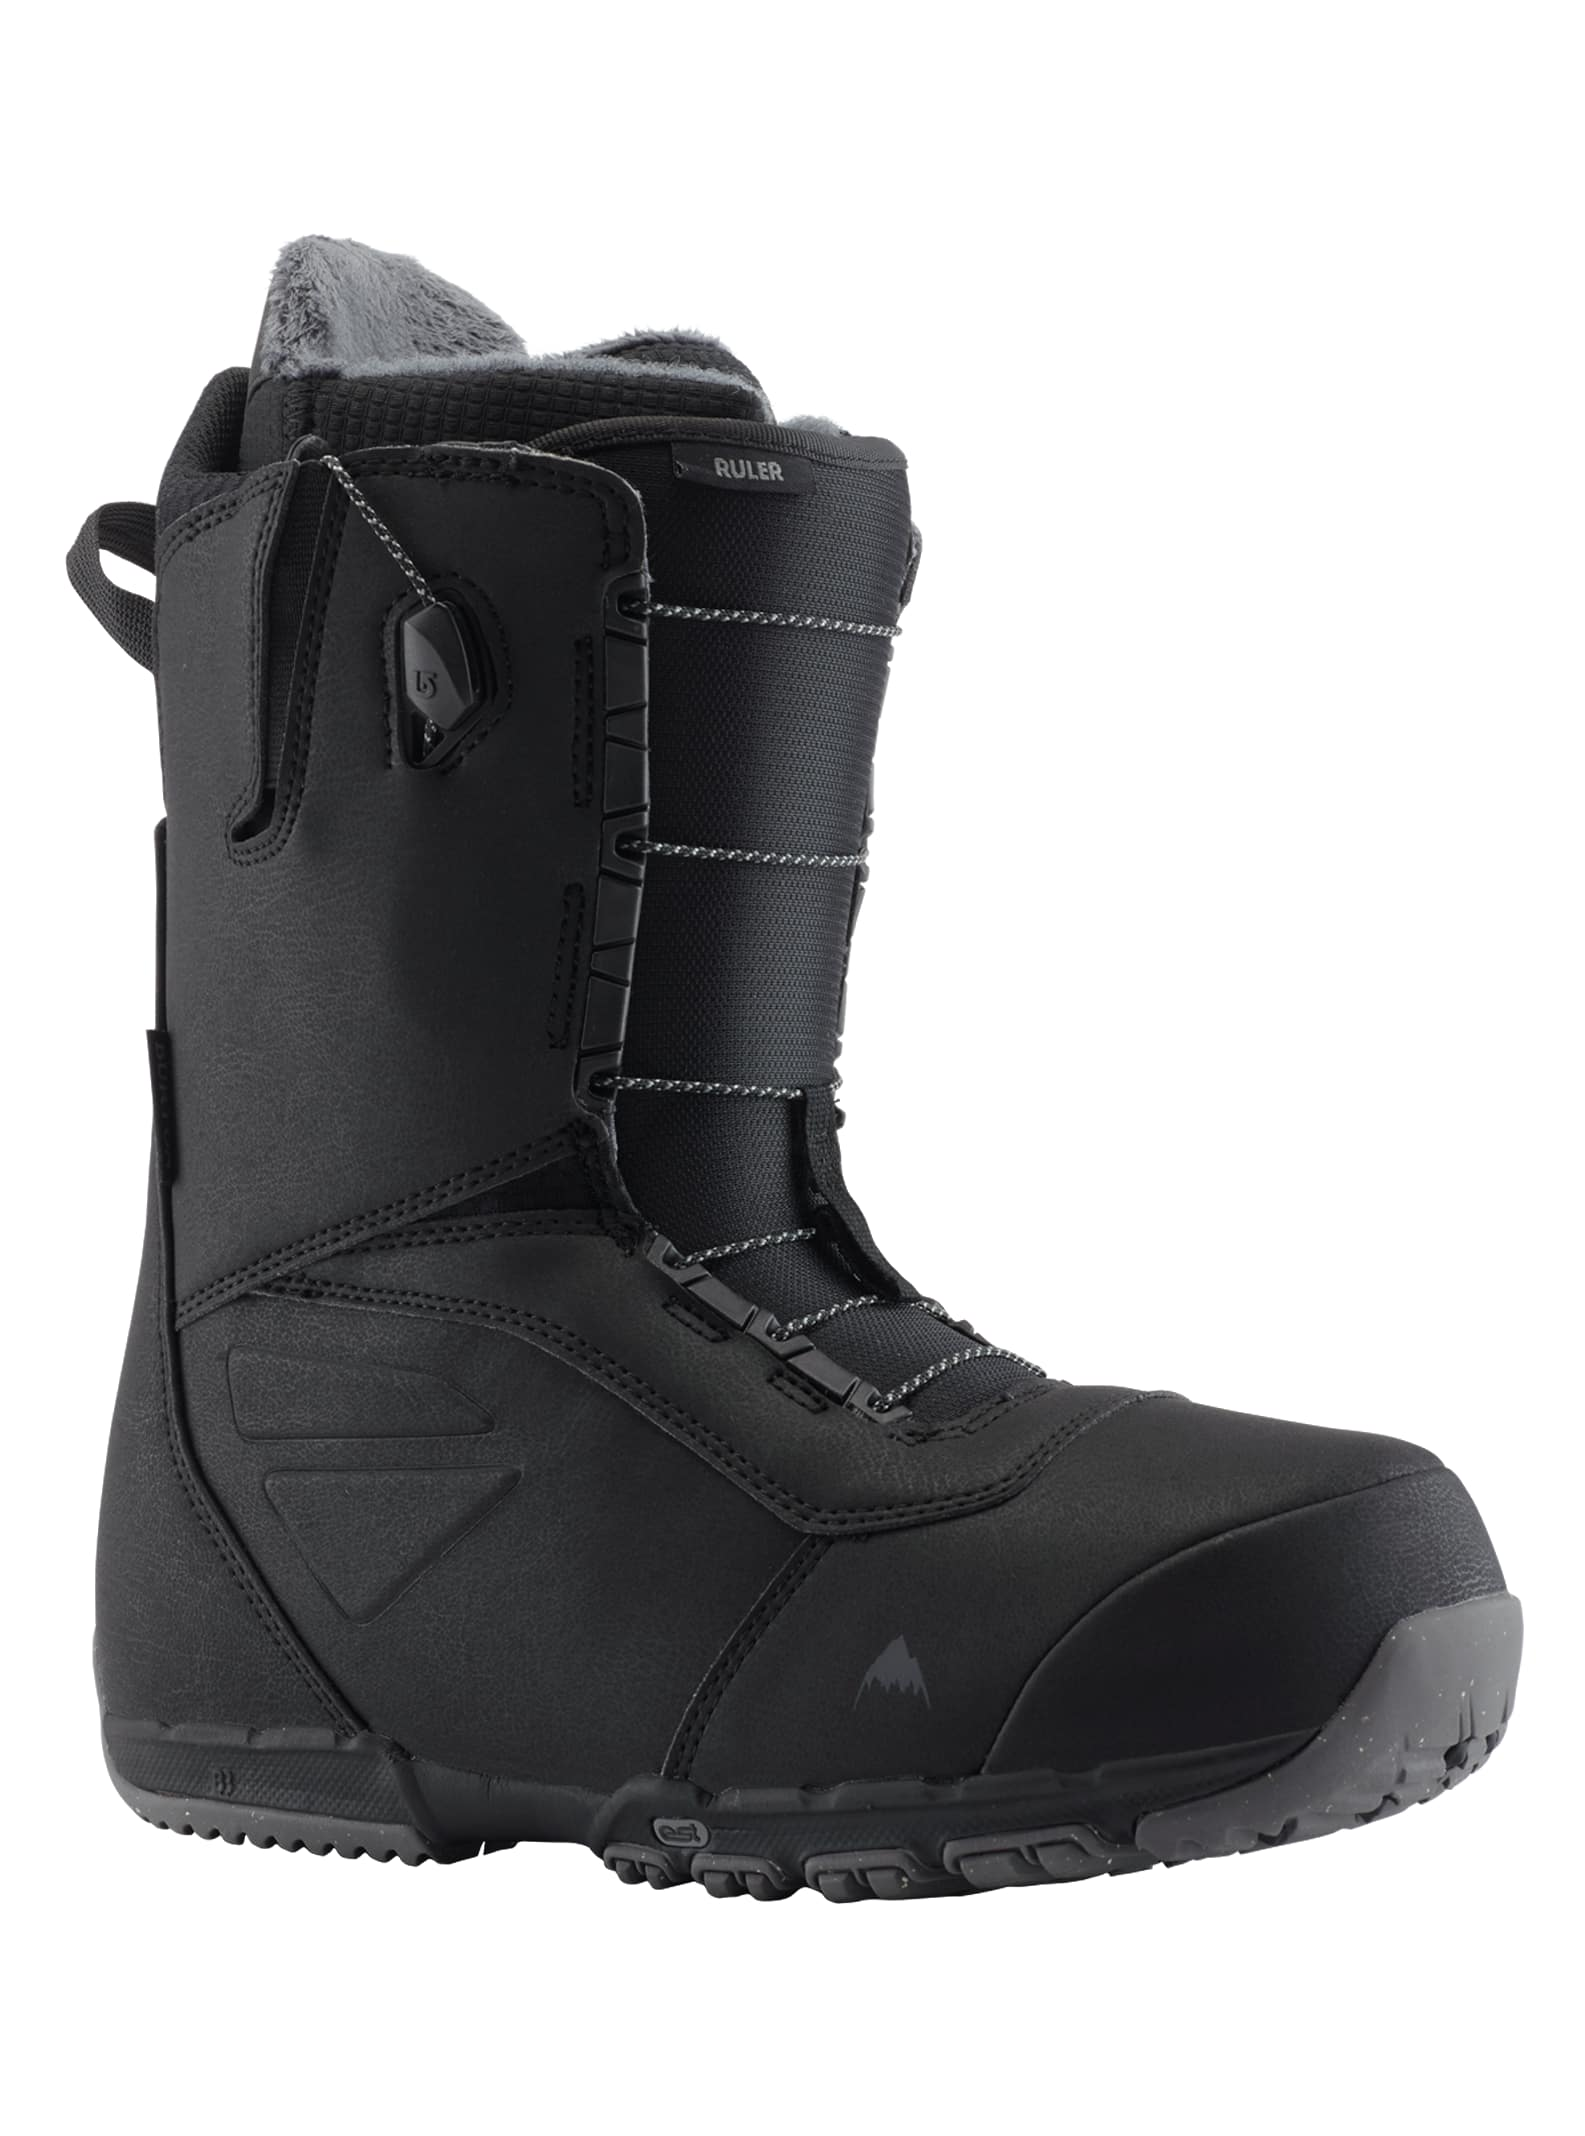 mens extra wide winter boots canada